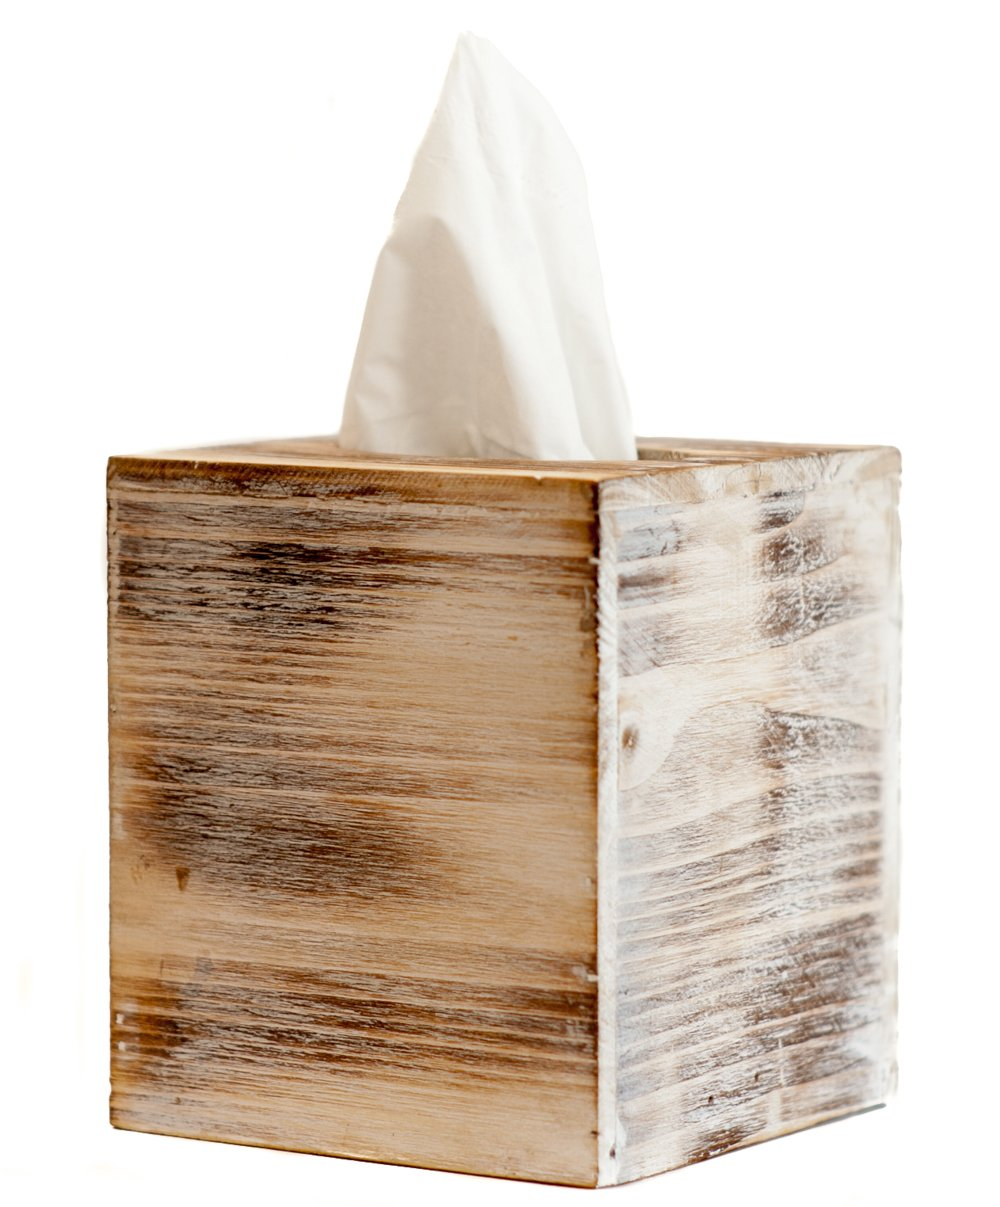 Tissue Box Holder | Rustic Cube Facial Tissue Box Cover Wood with Slide-Out Bottom Panel